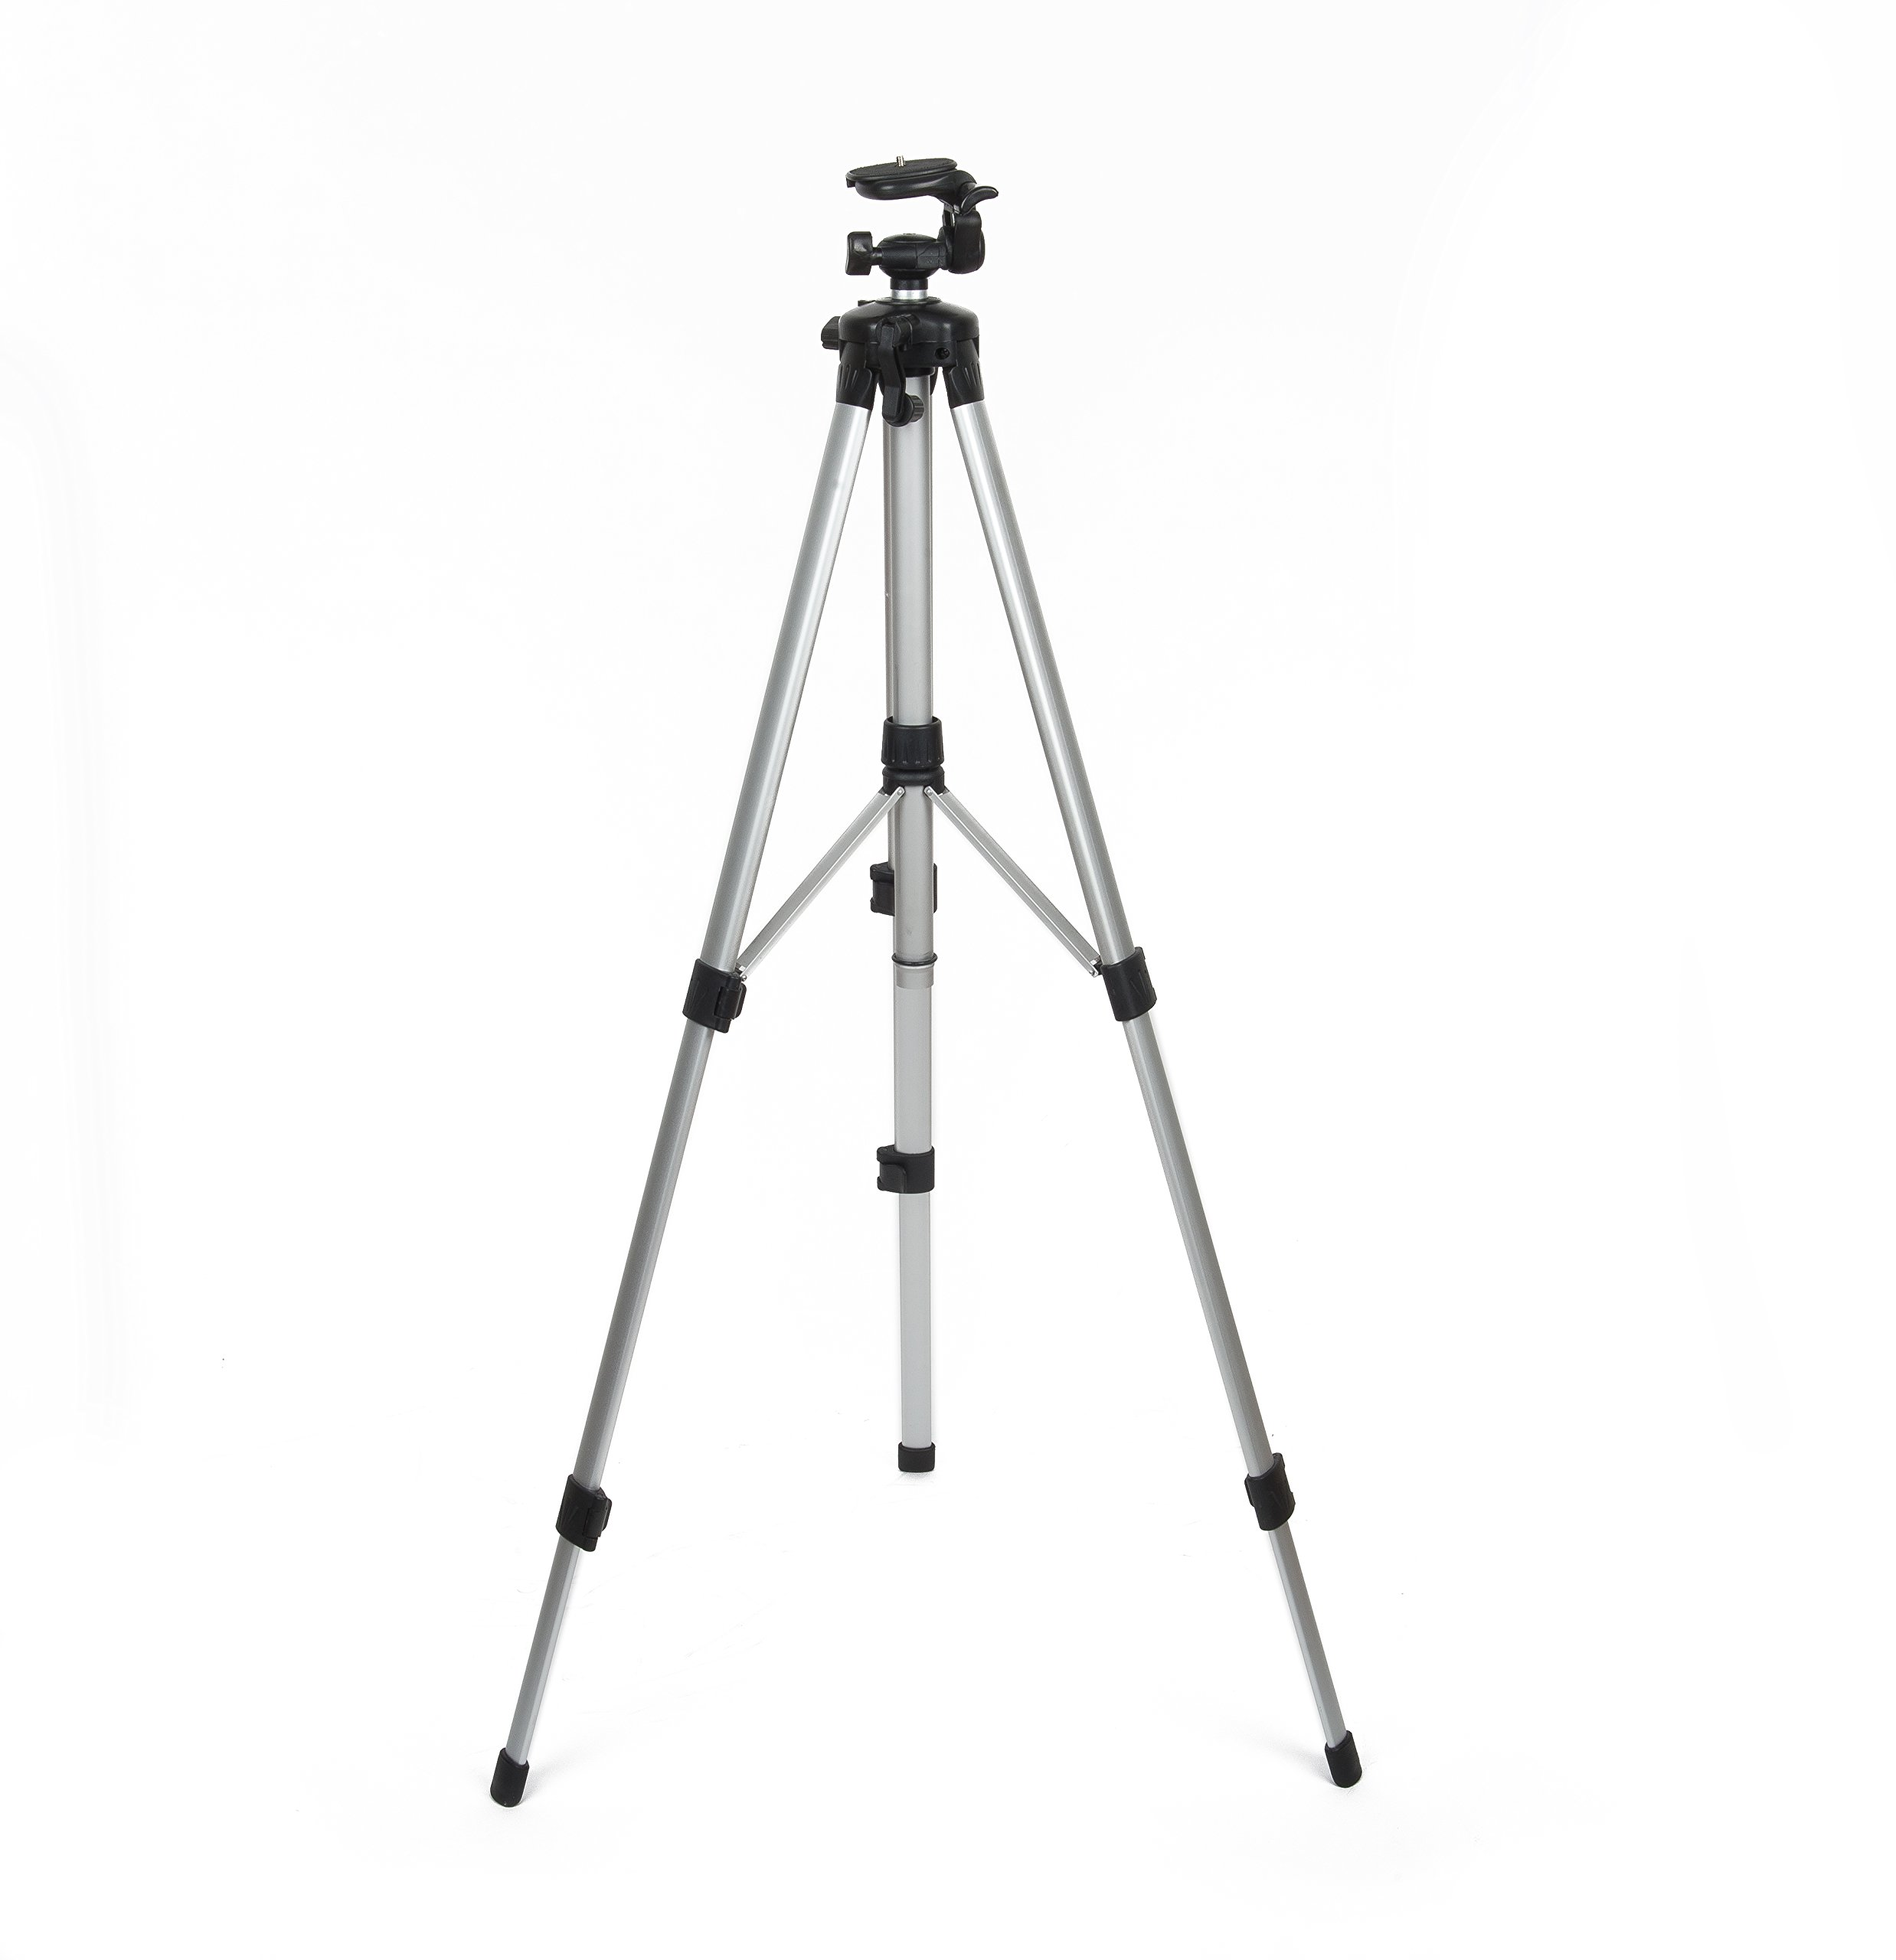 AdirPro 790-78 Elevating Line Laser/Distance Measure Tripod